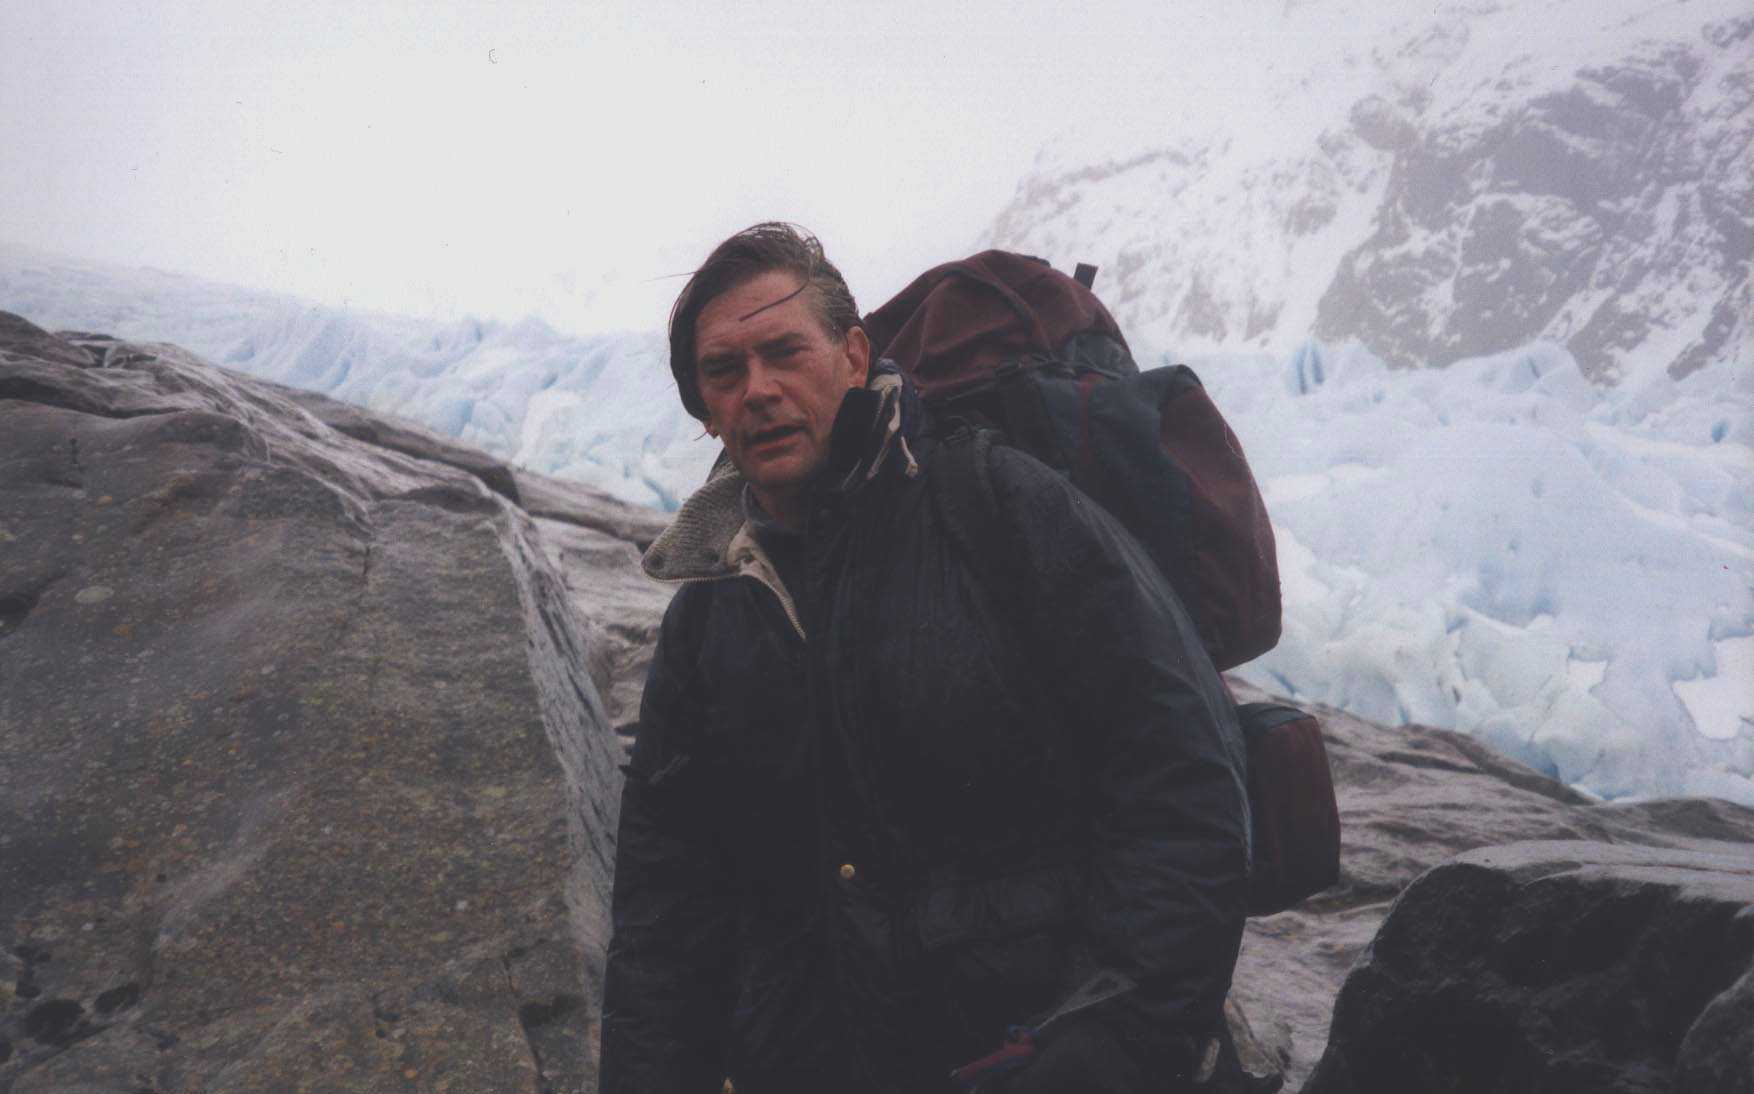 McNiel with backpack on snowy mountain